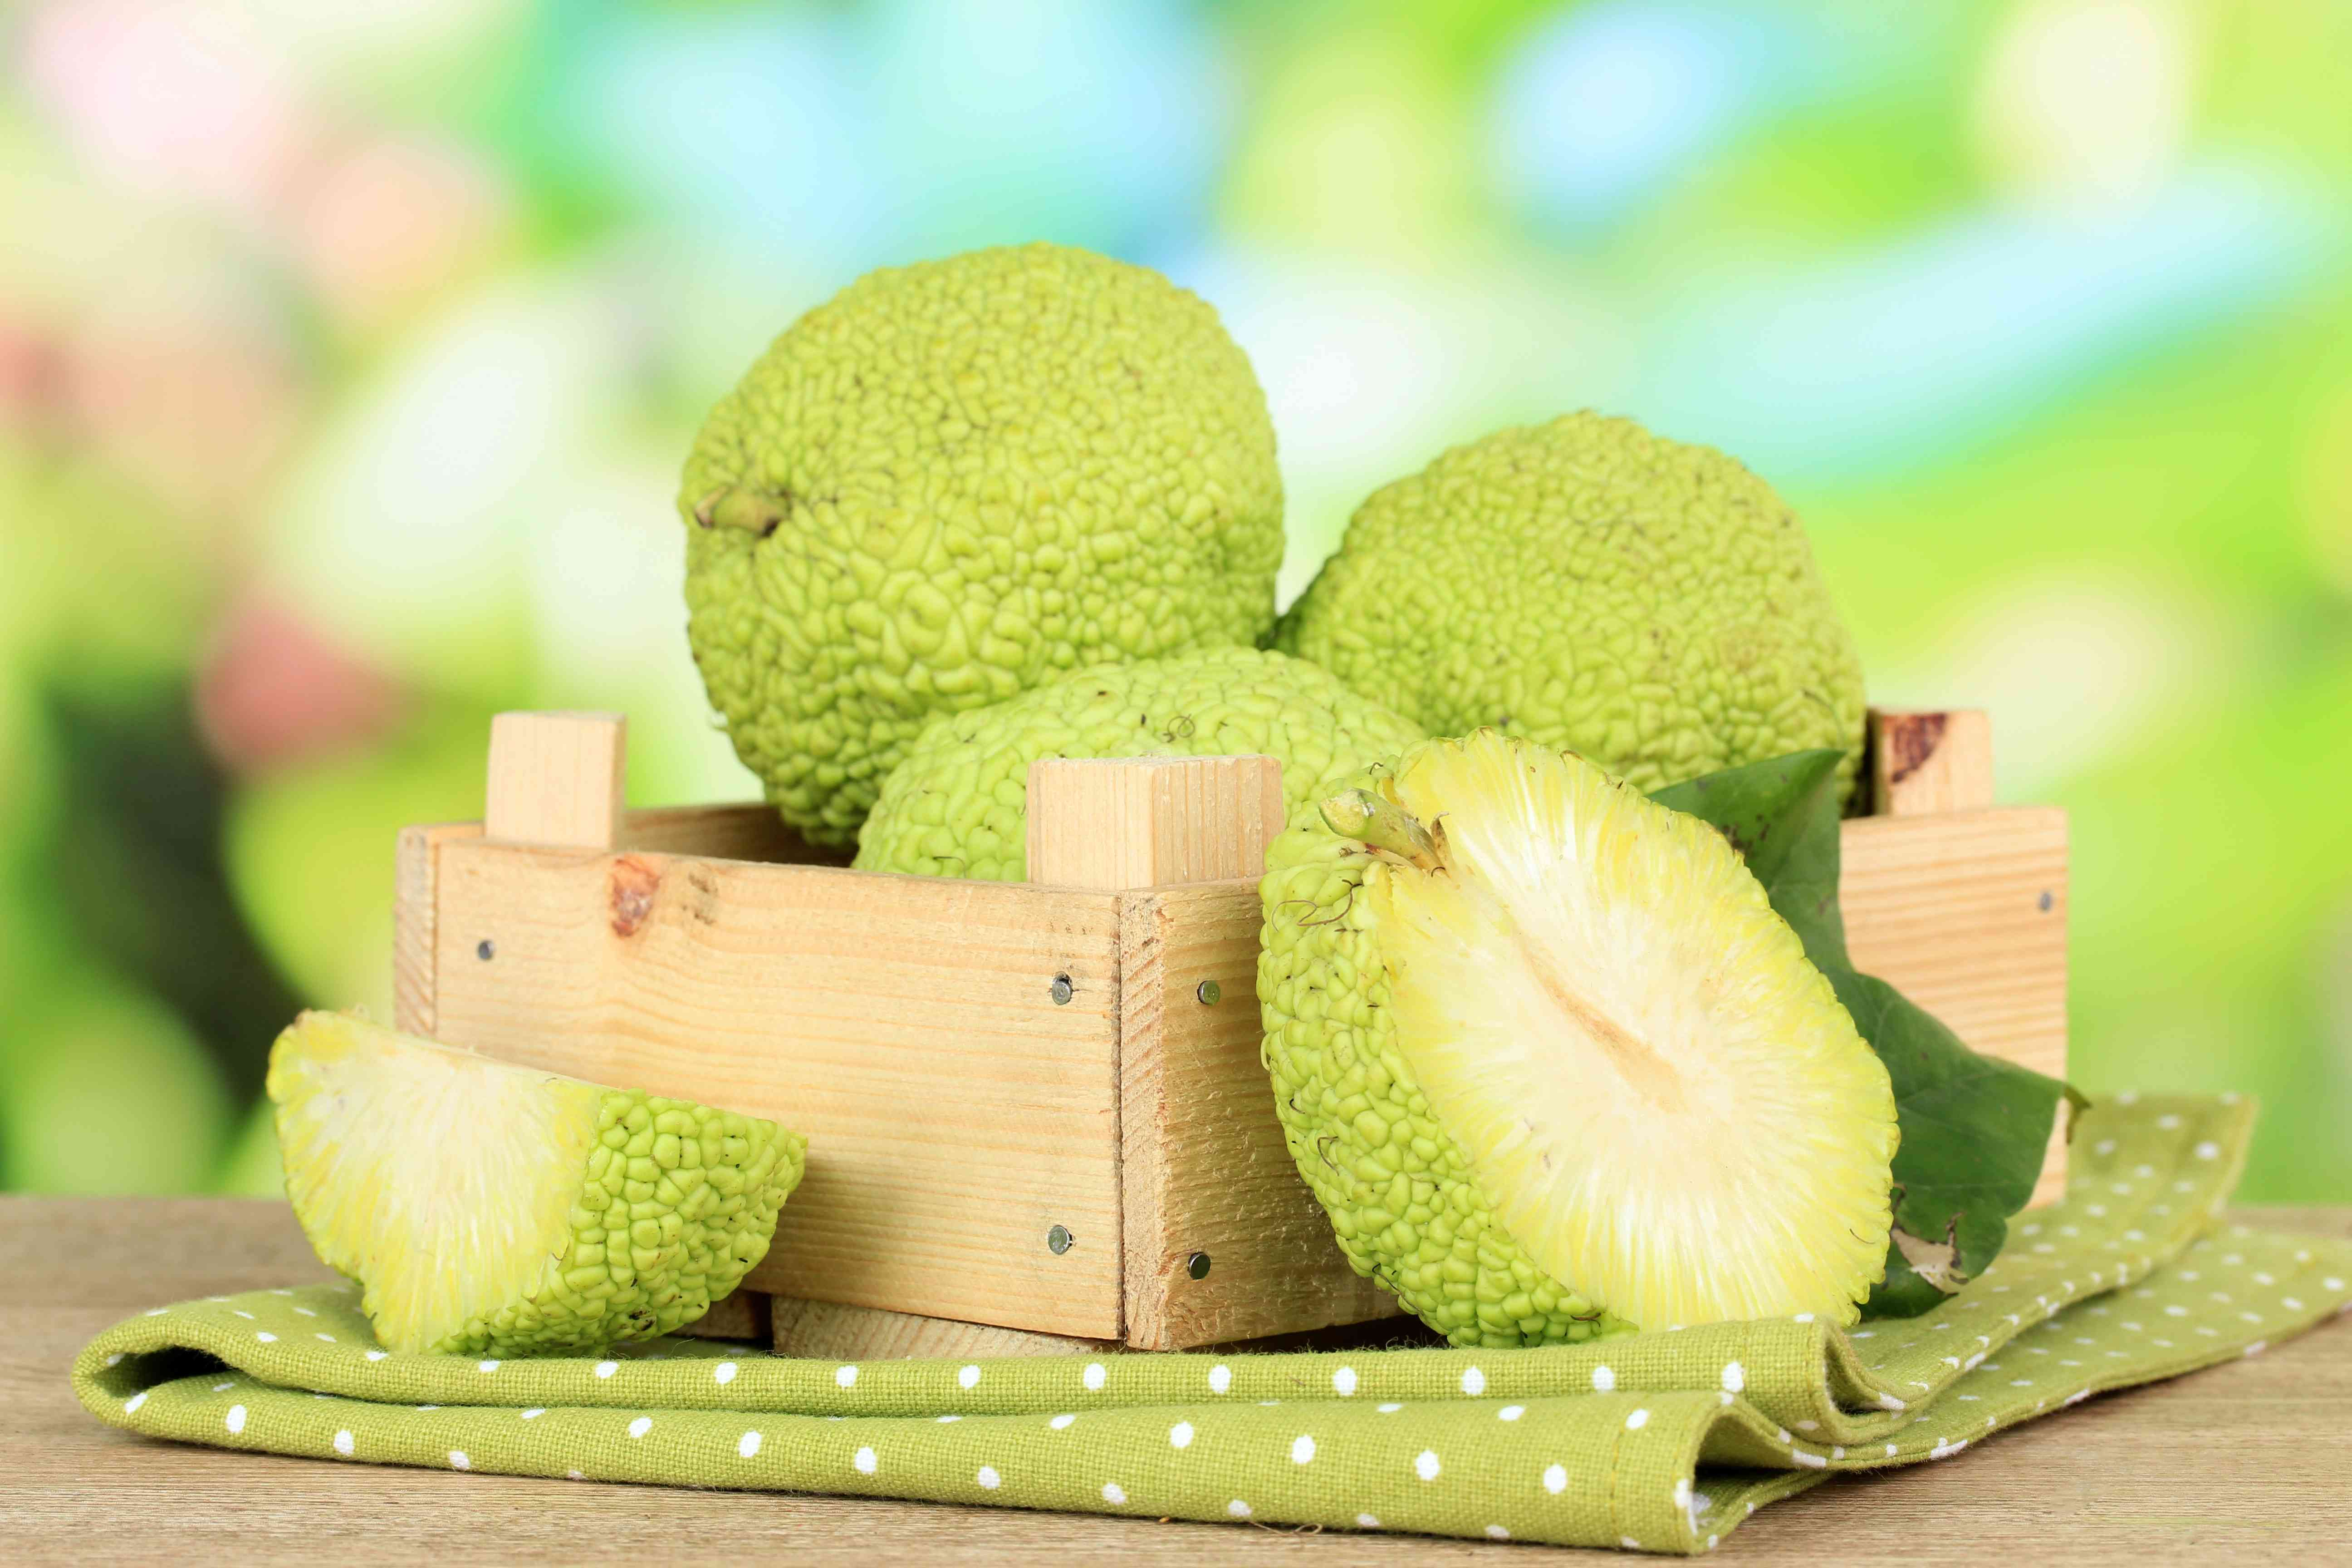 Osage oranges in a crate.